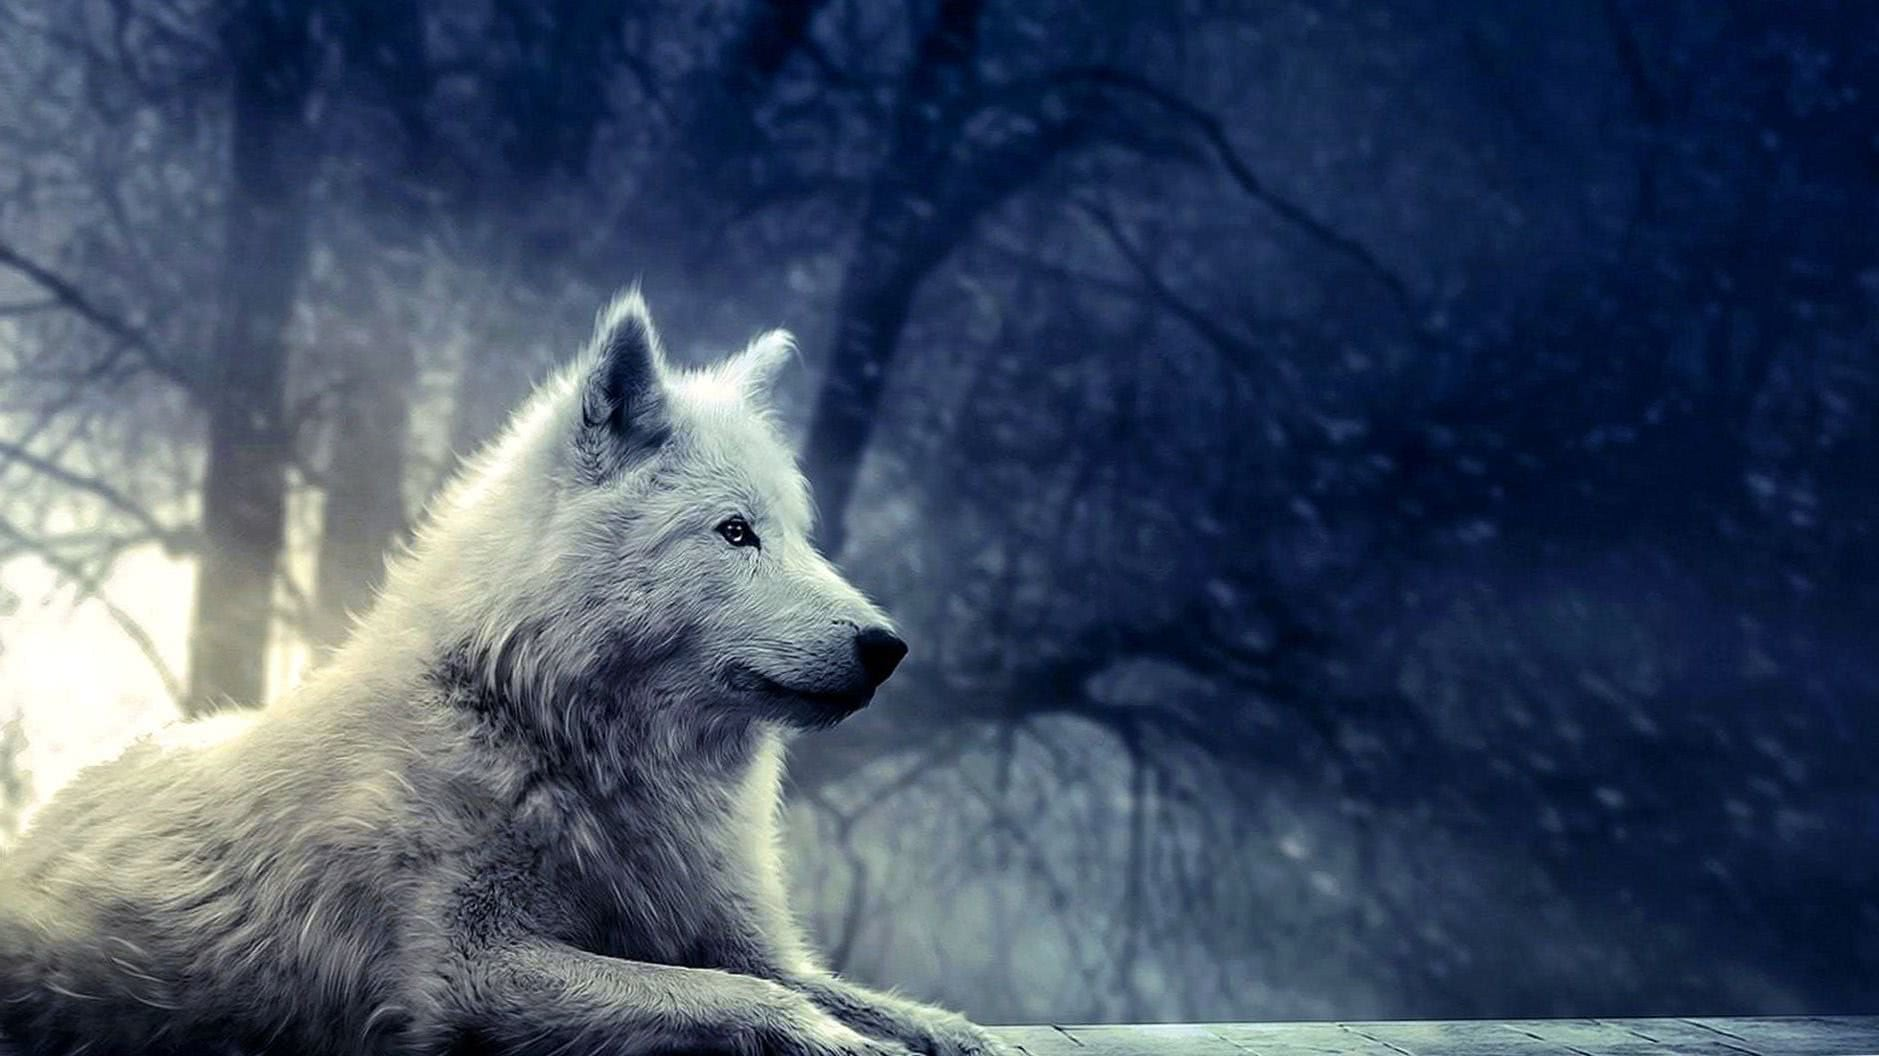 HD Wolf Wallpaper For PC